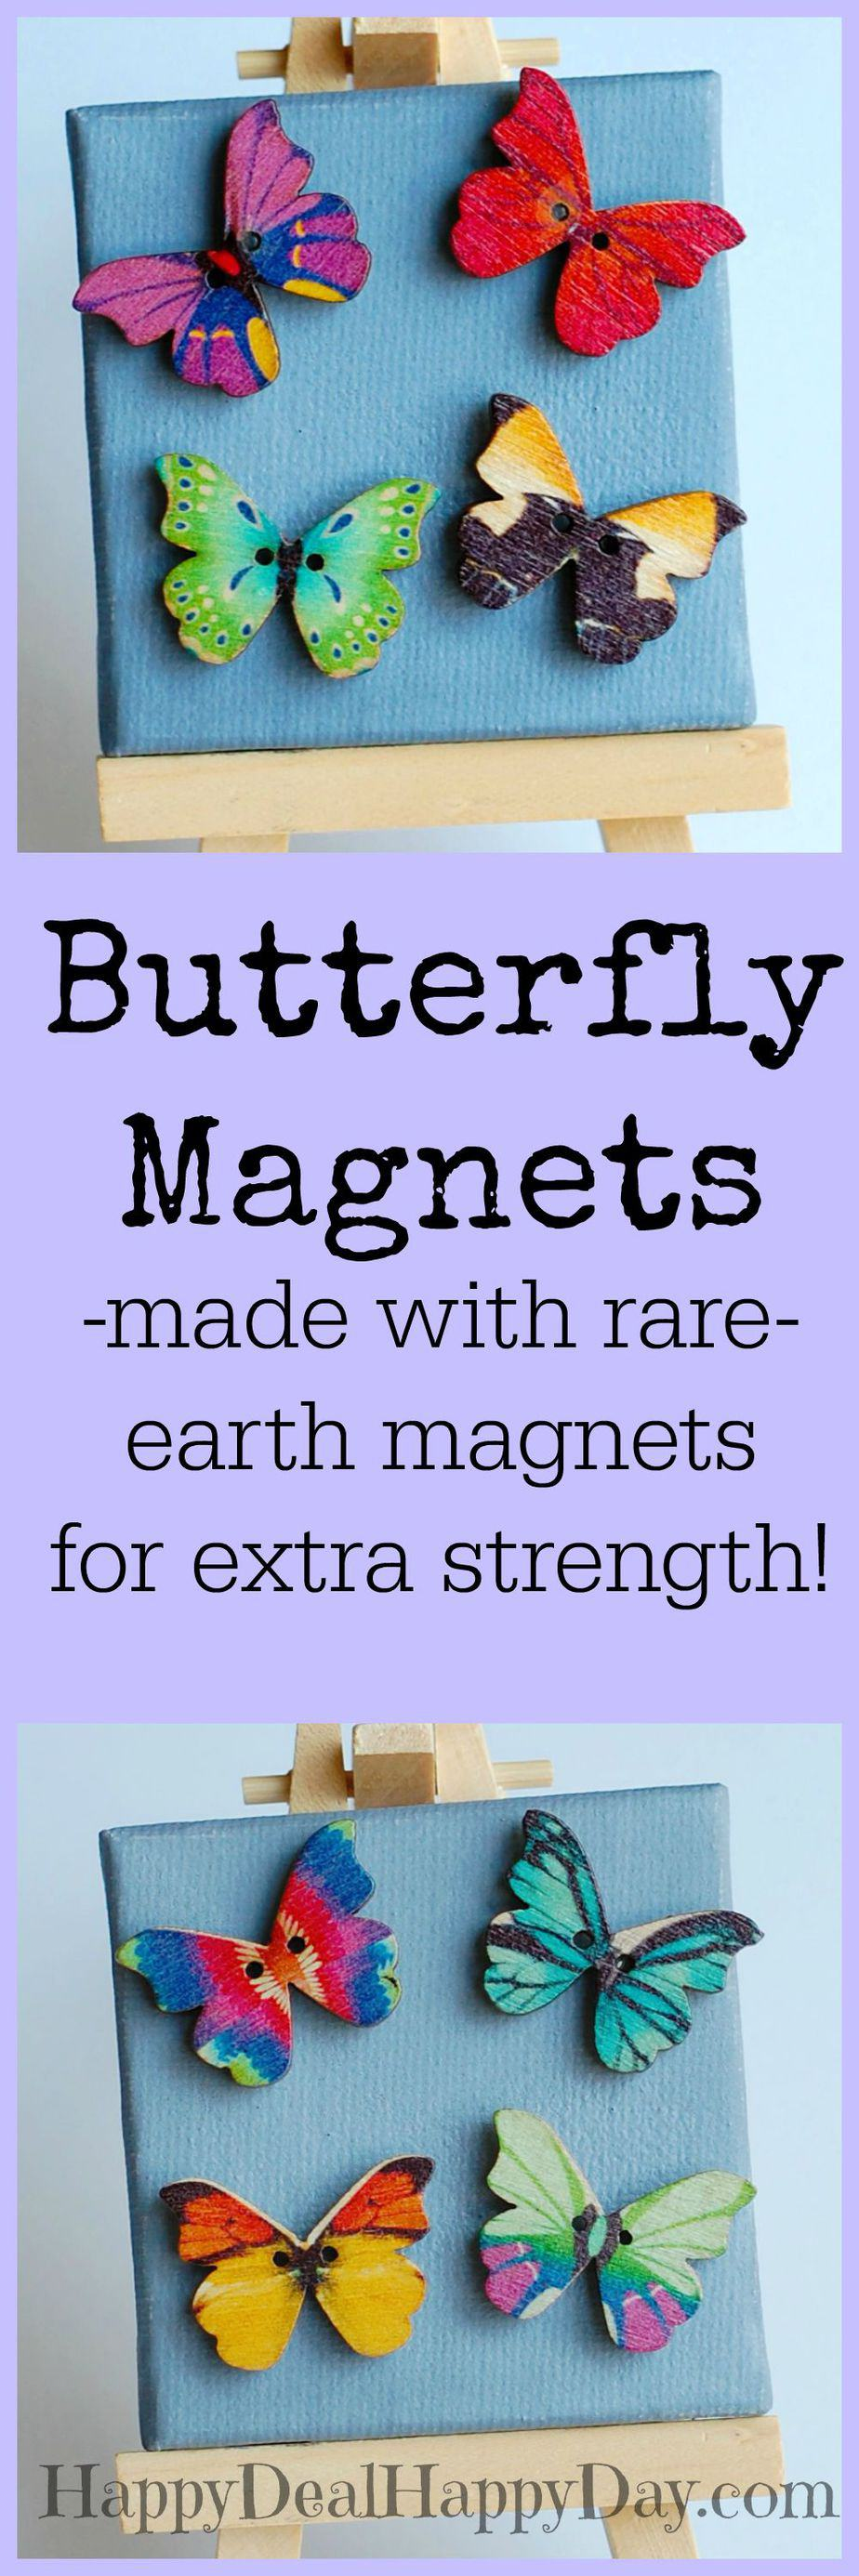 Super Cute butterfly magnets - I totally have to get a set for my fridge! My daughter would love these in her locker!